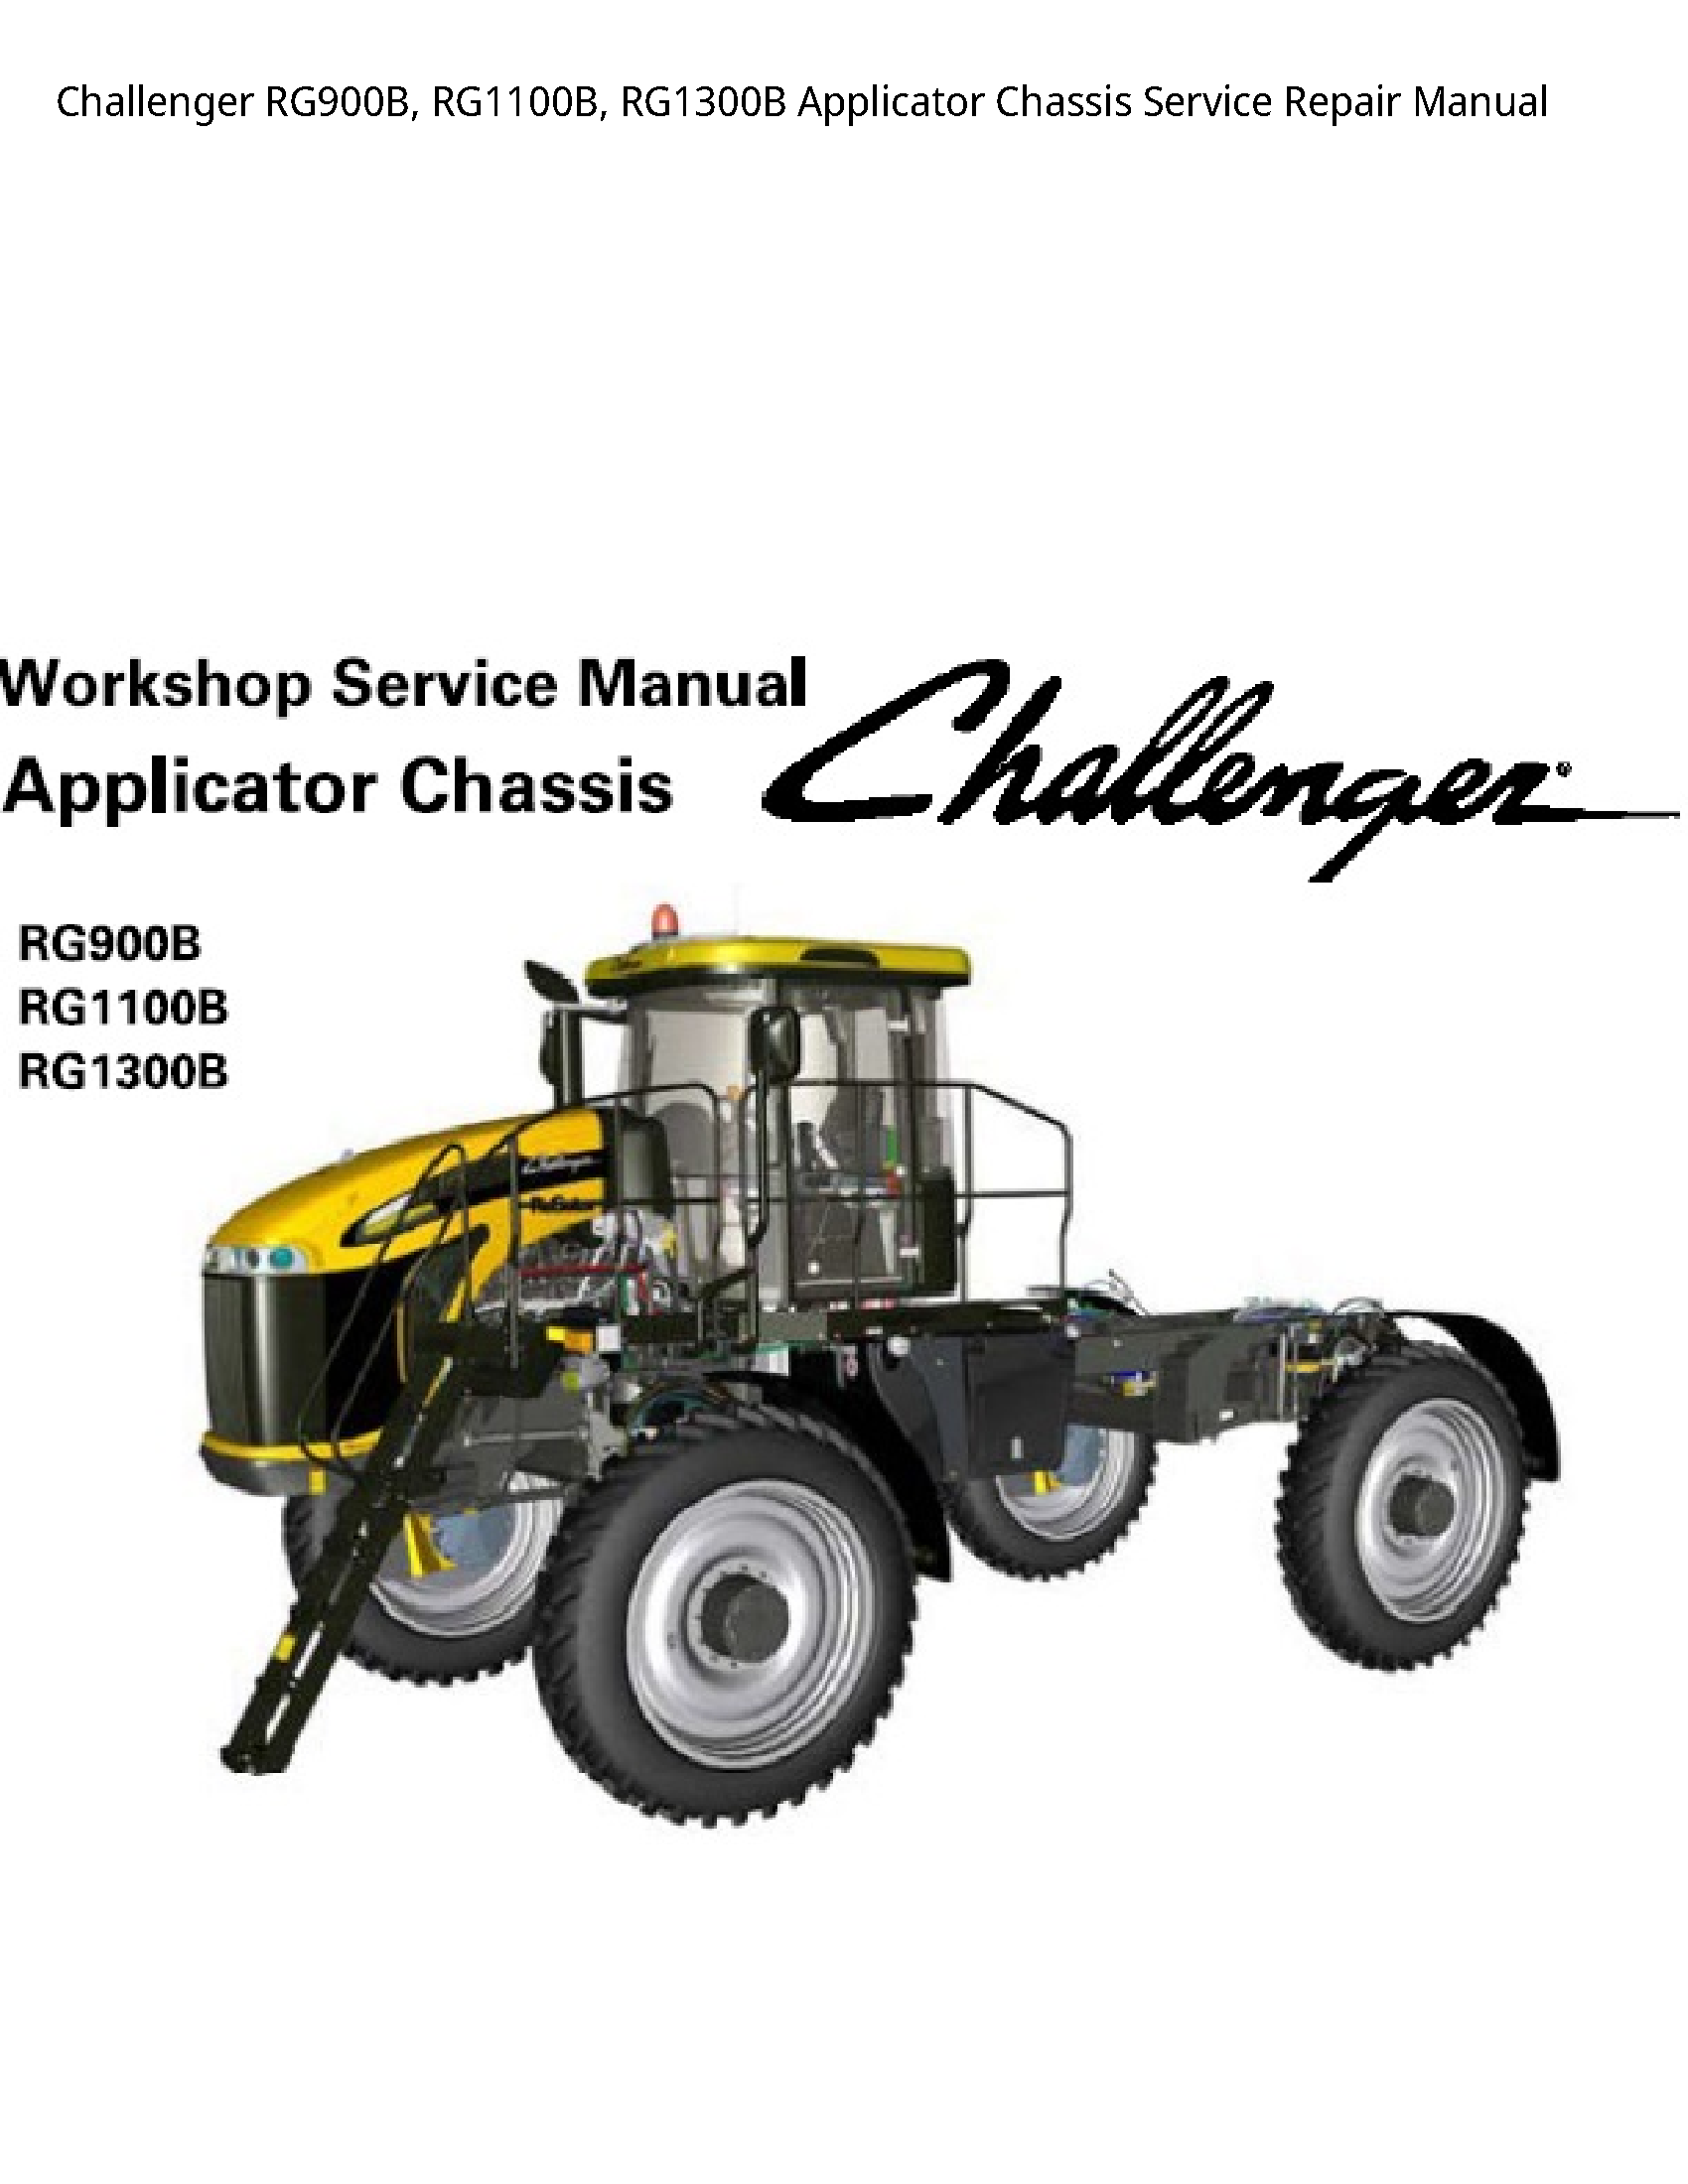 Challenger RG900B Applicator Chassis Manual, Challenger